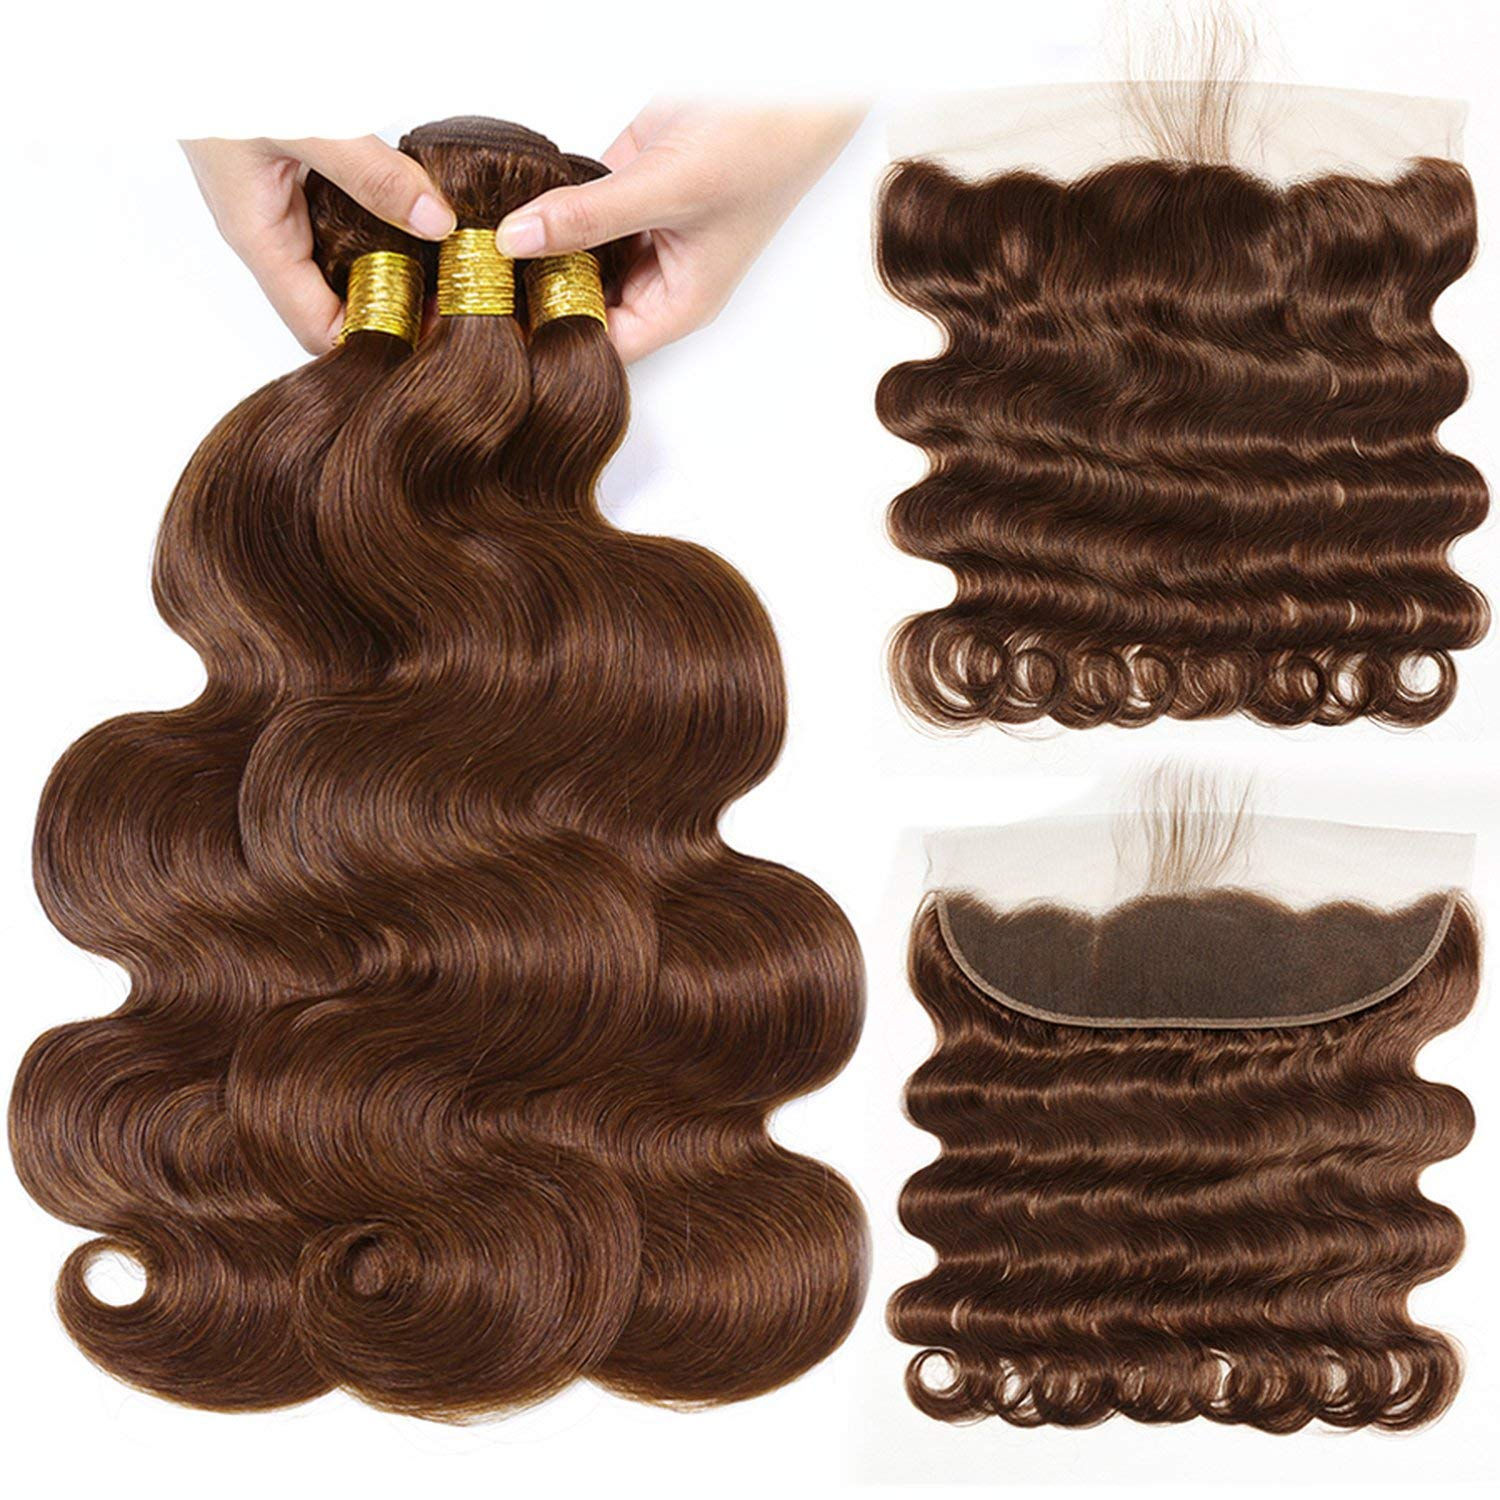 #4 Light Brown Body Wave Hair Bundles With Frontal Brazilian Hair Weave Bundles Human Hair Bundles Romantico NonRemy Hair Extension,16 16+14Closure,Natural Black Remy 81H9ErnWxgL